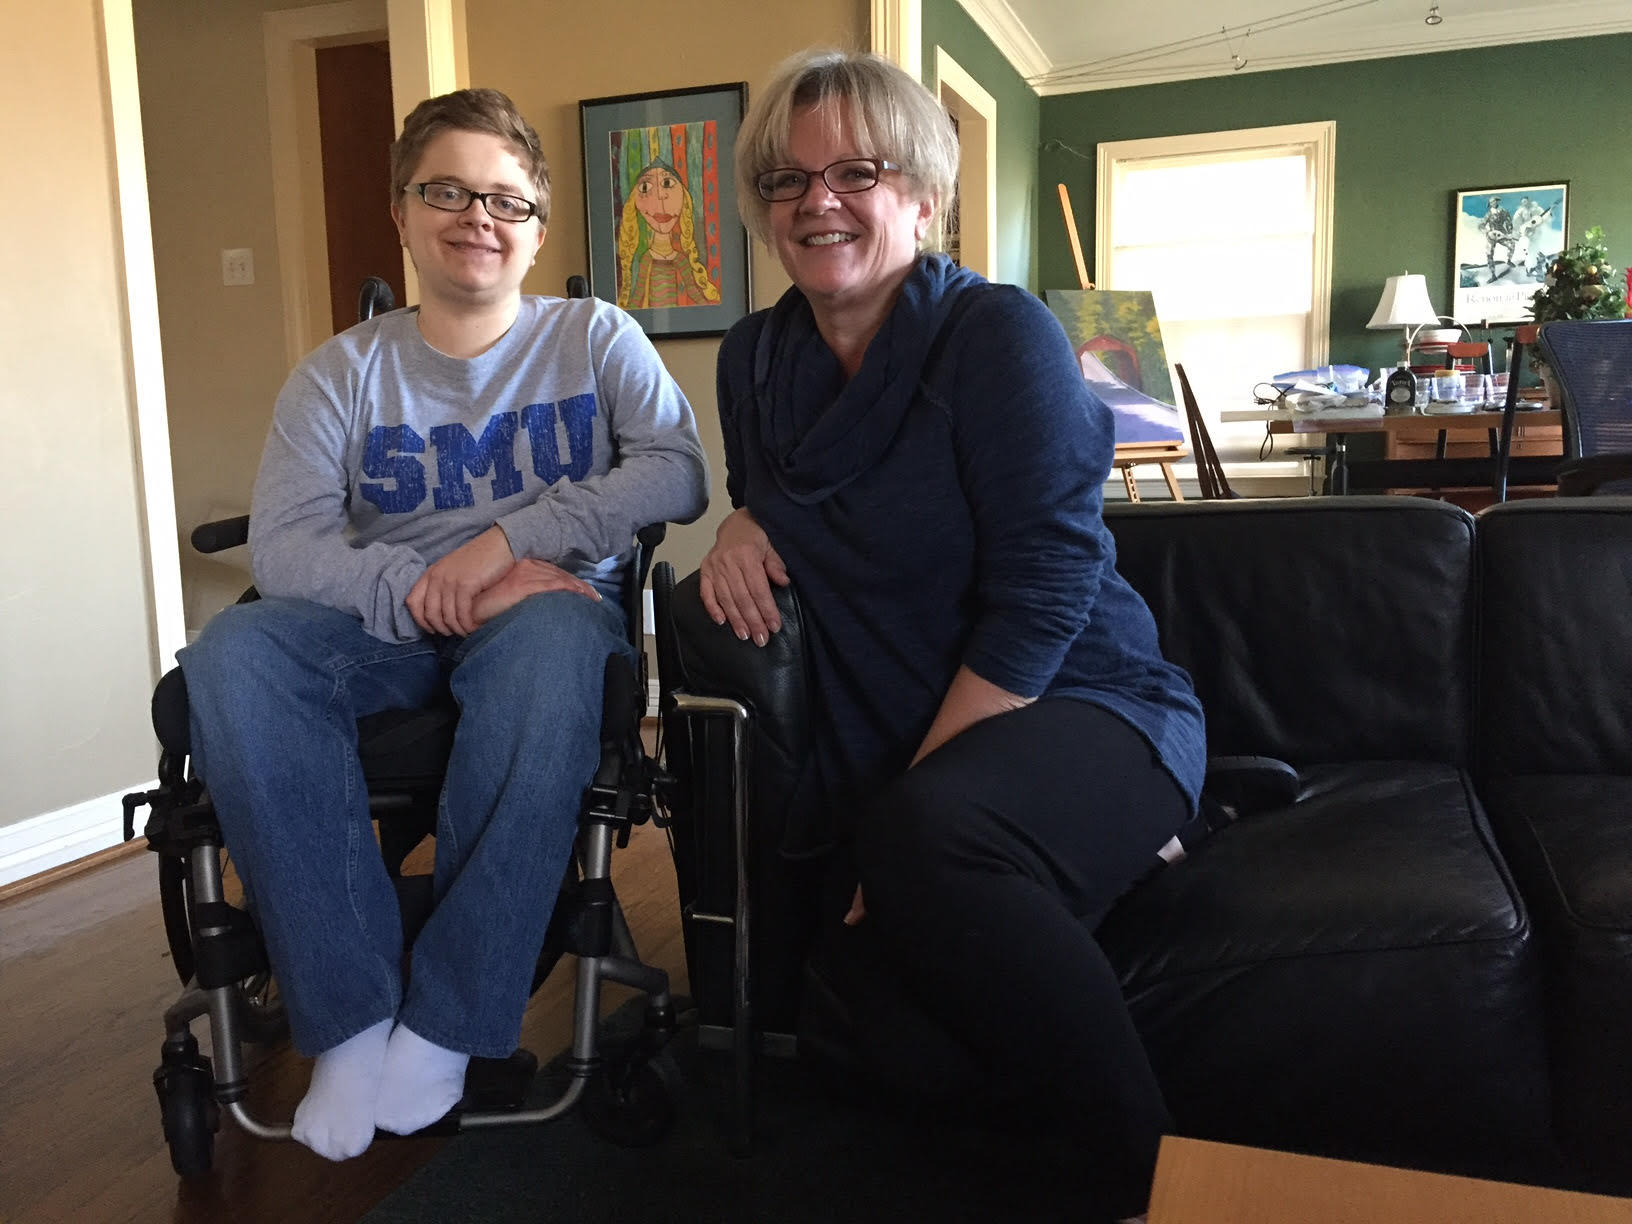 Duchenne Muscular Dystrophy Diagnosis Stories Gene Editing For Duchenne Muscular Dystrophy Shows Promise